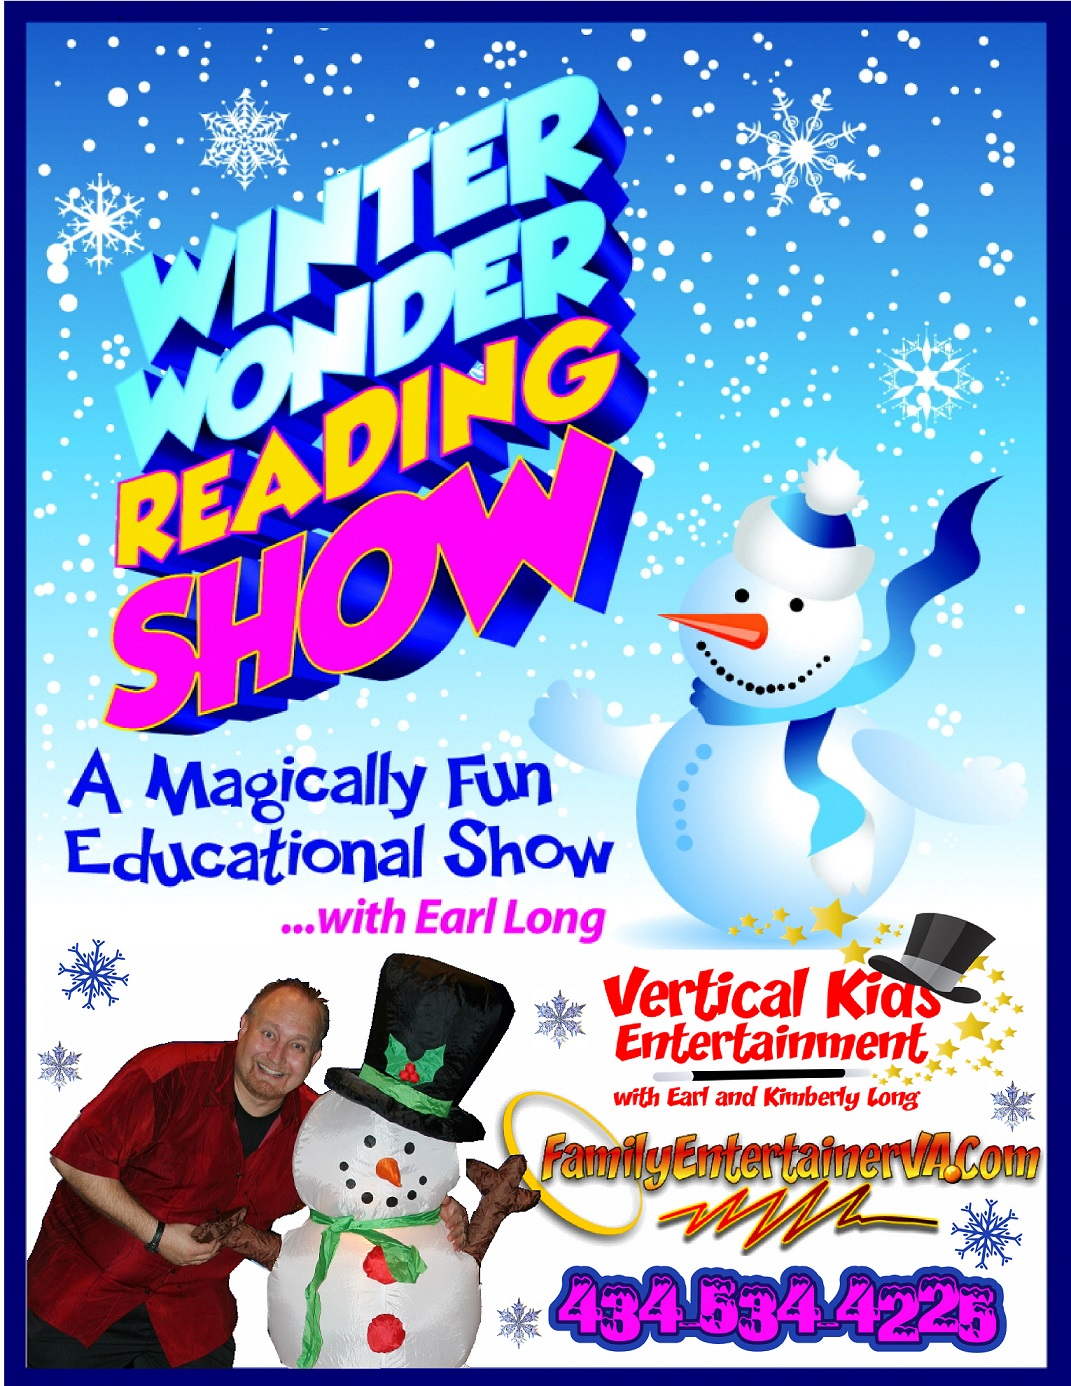 Winter Wonder Reading Show